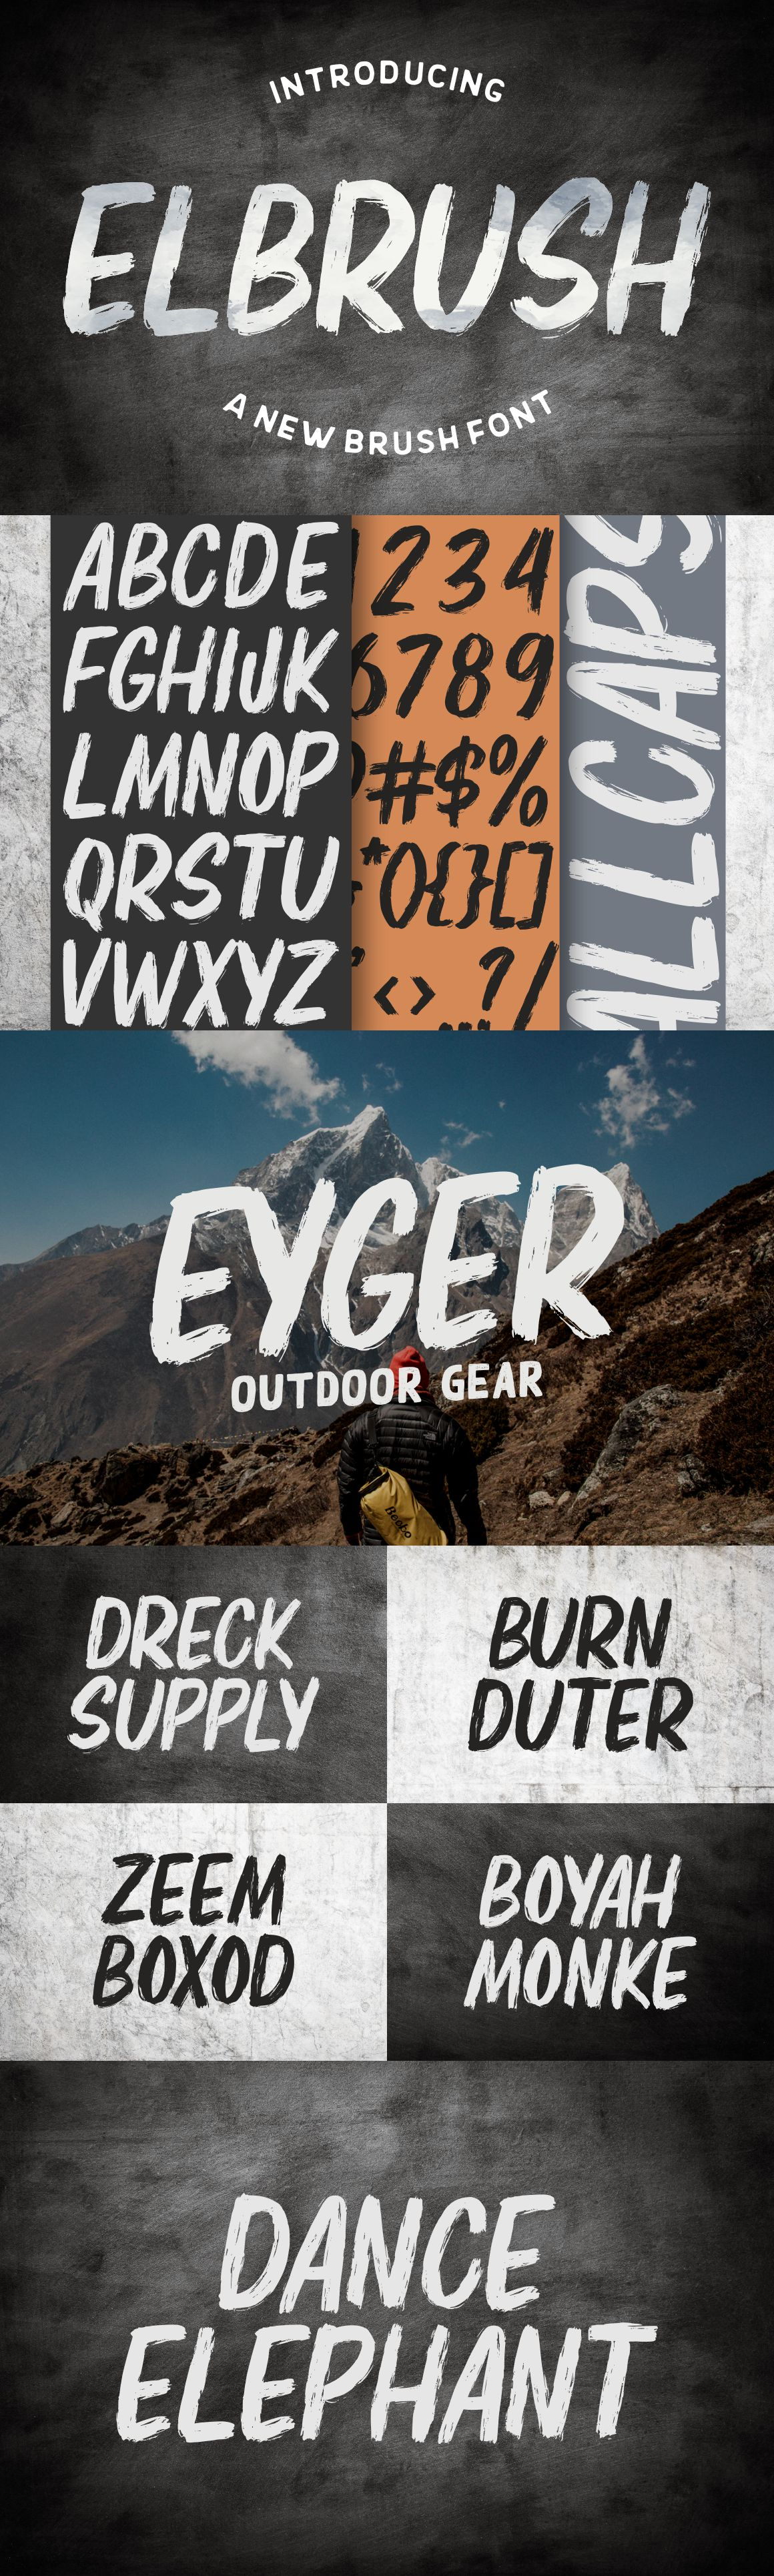 Elbrush - New Brush Font example image 2